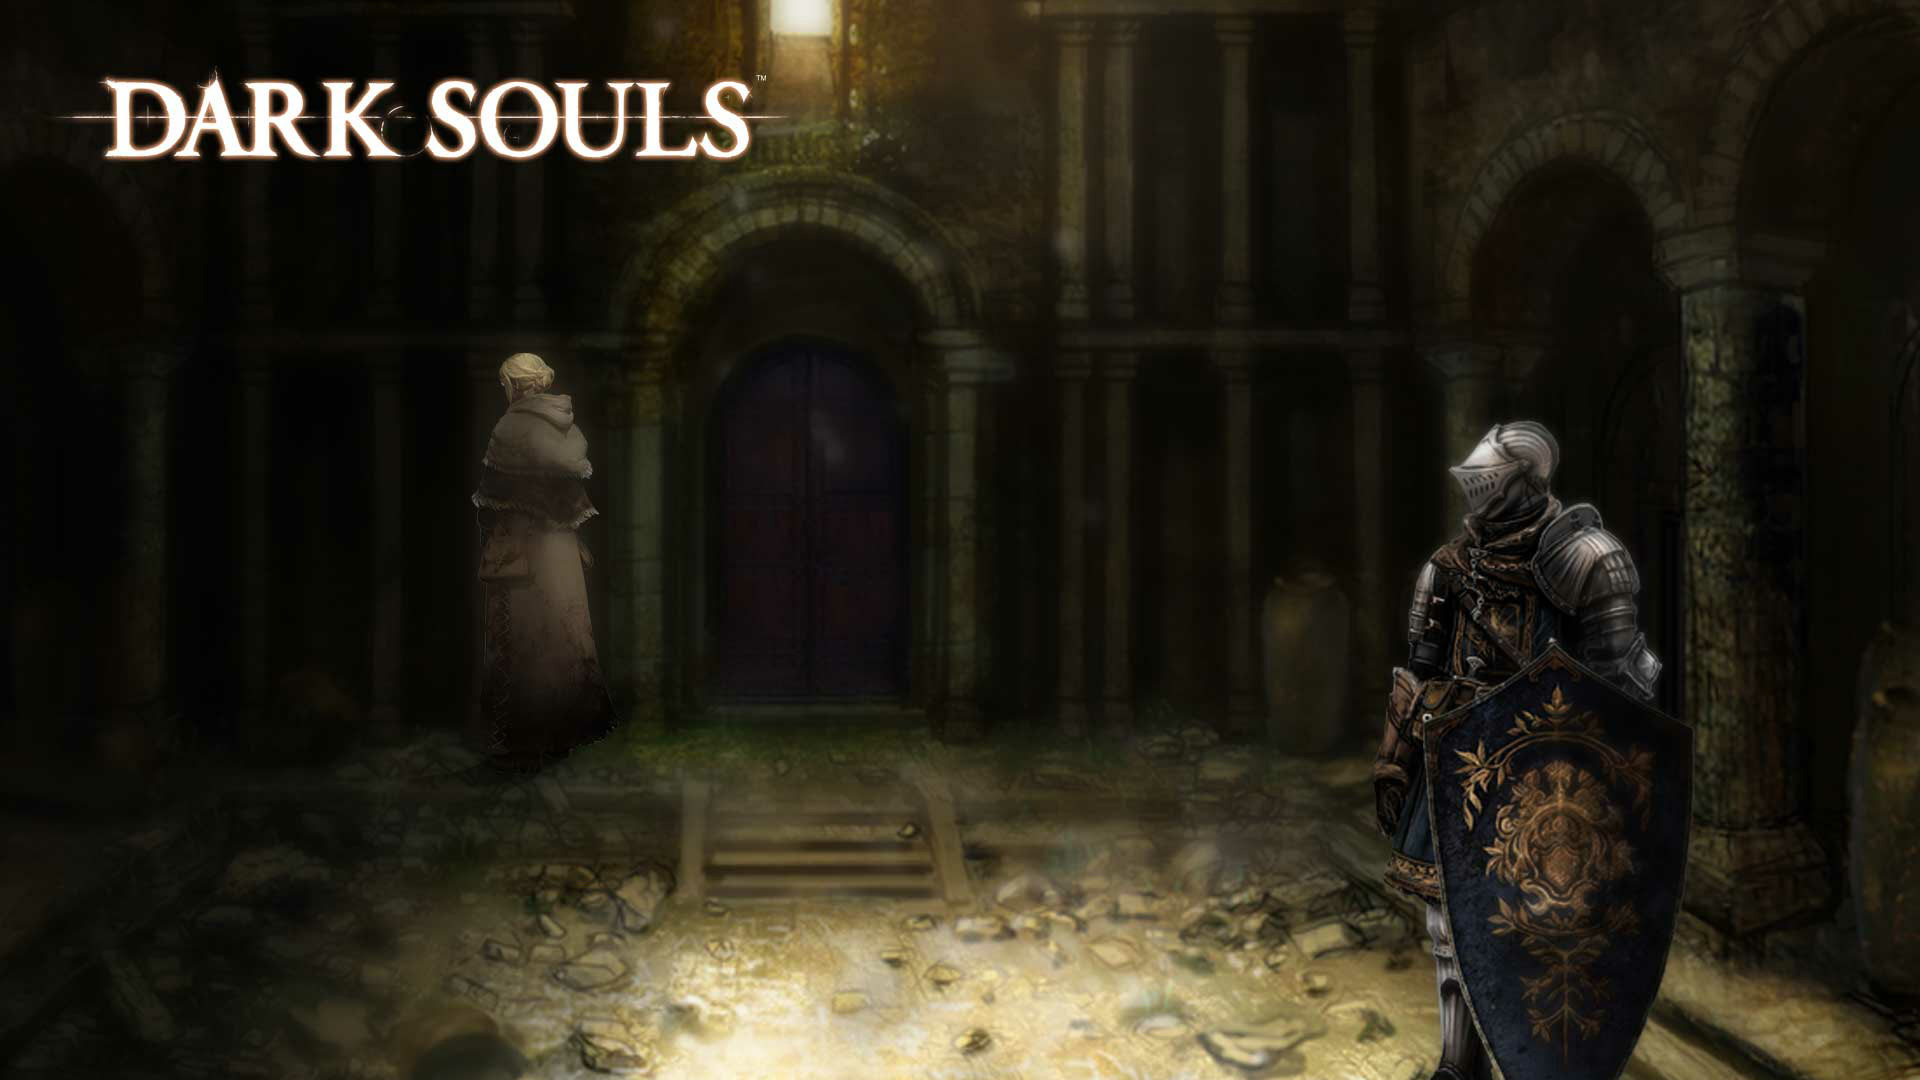 Dark Souls Wallpapers in HD Page 3 1920x1080